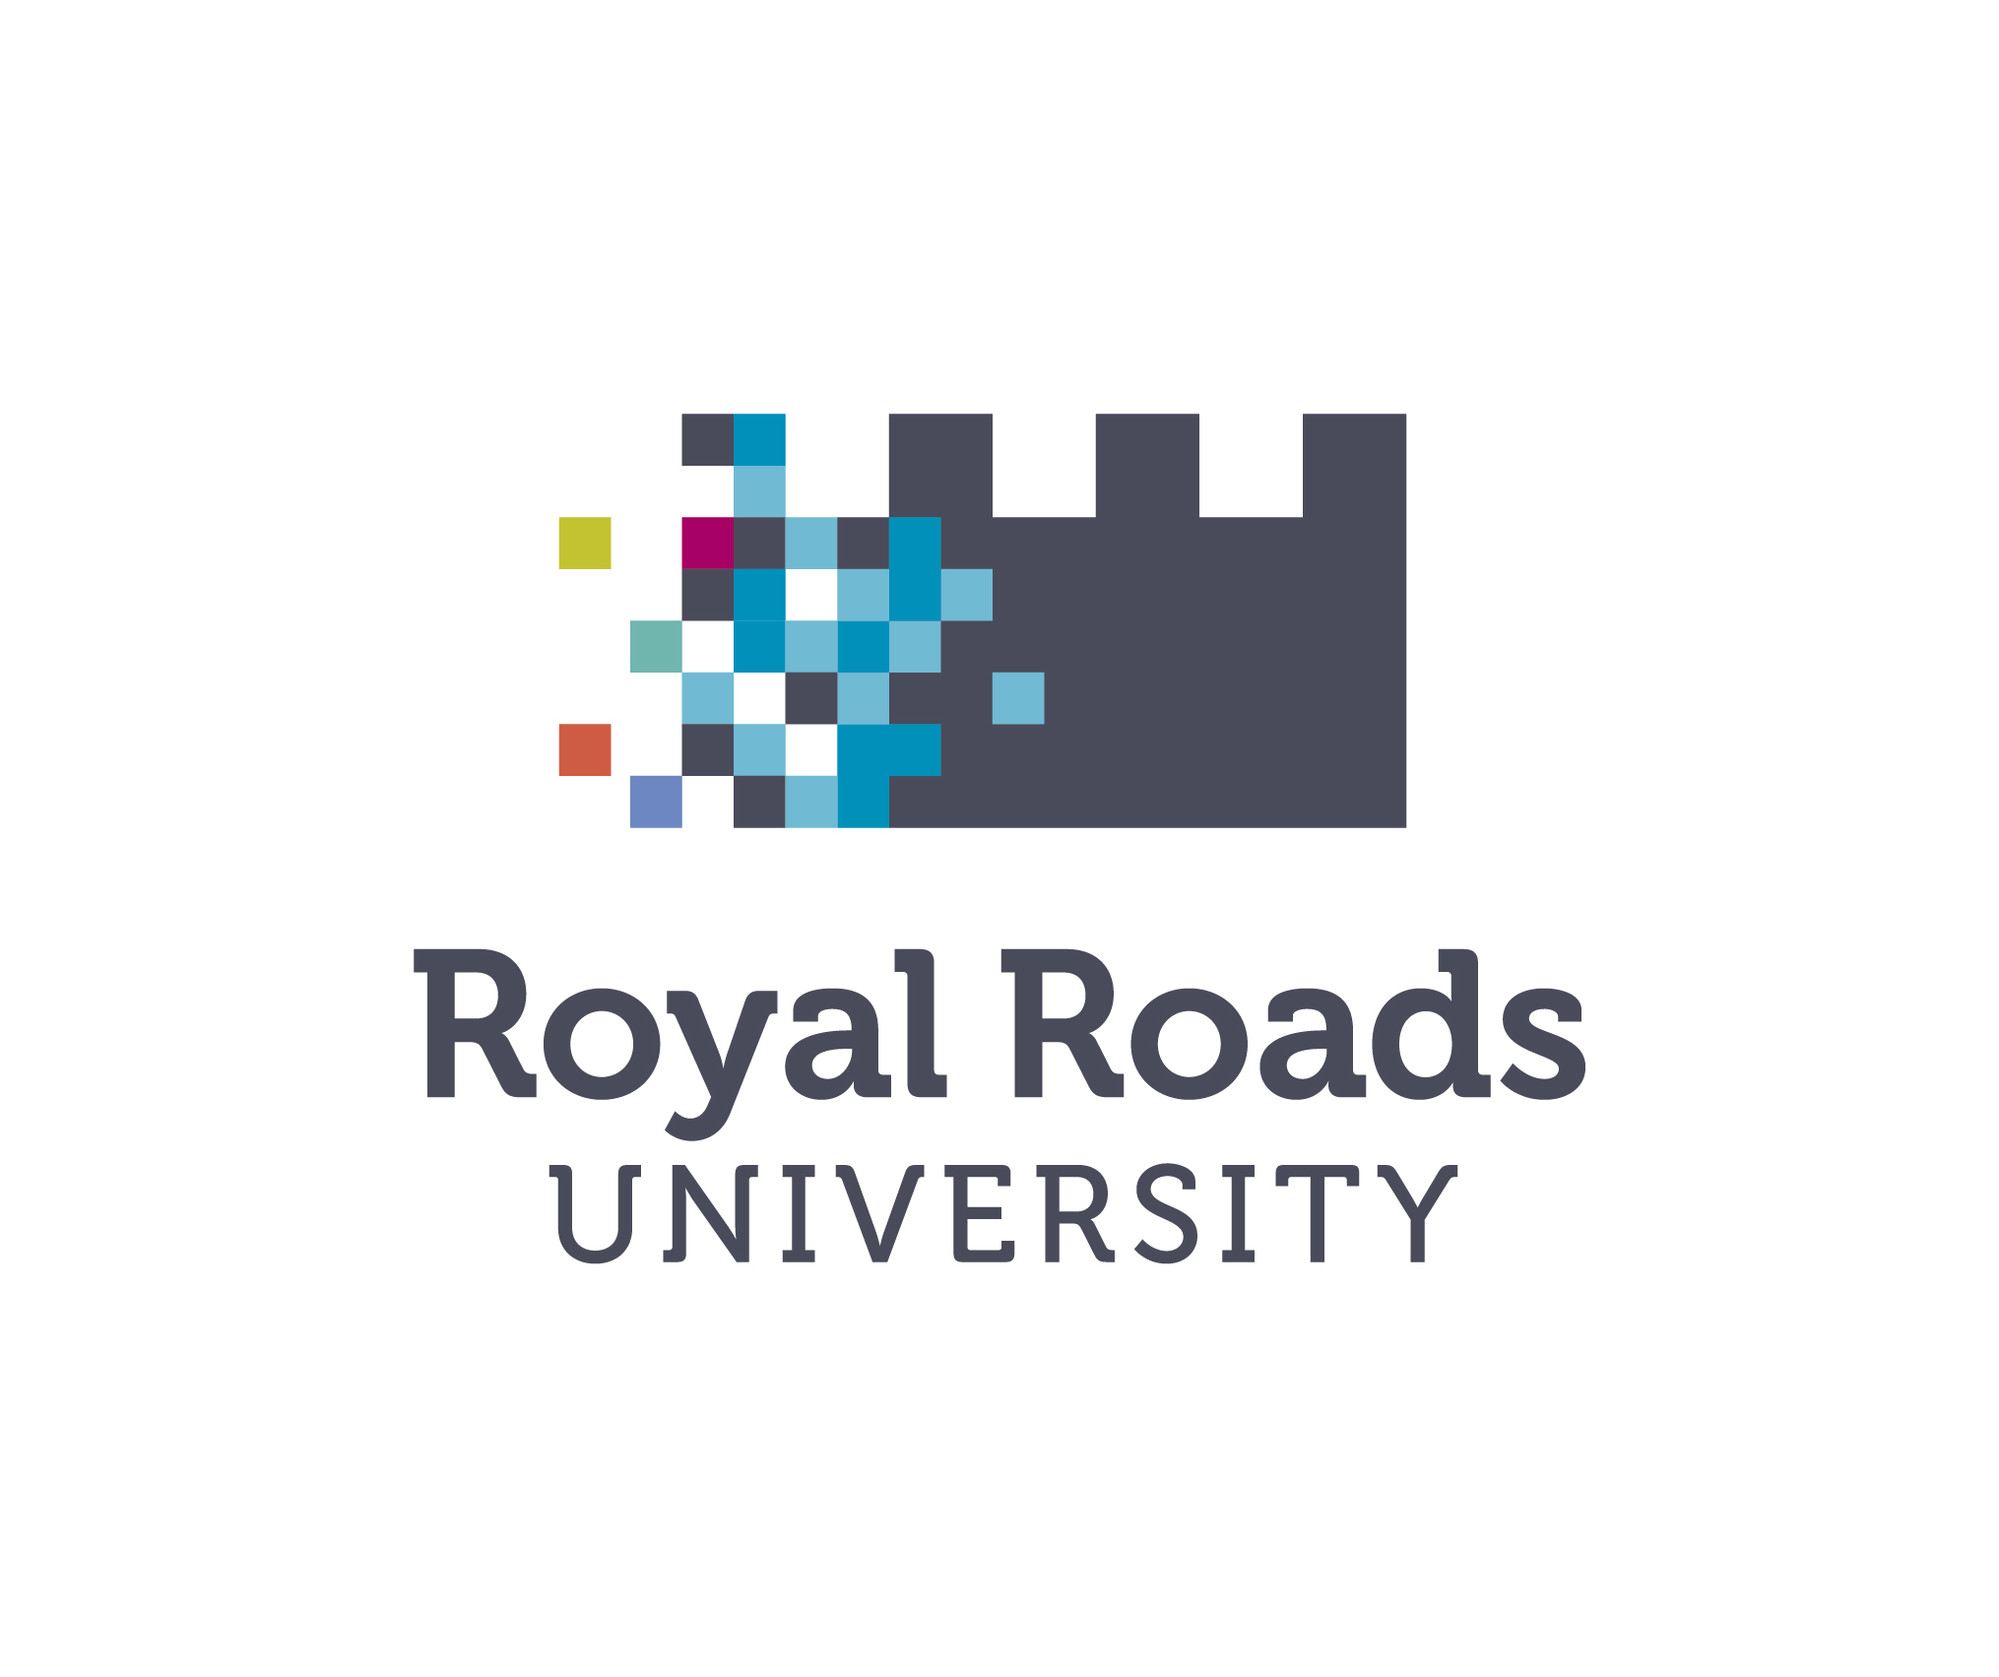 Royal Roads University - Booth #3